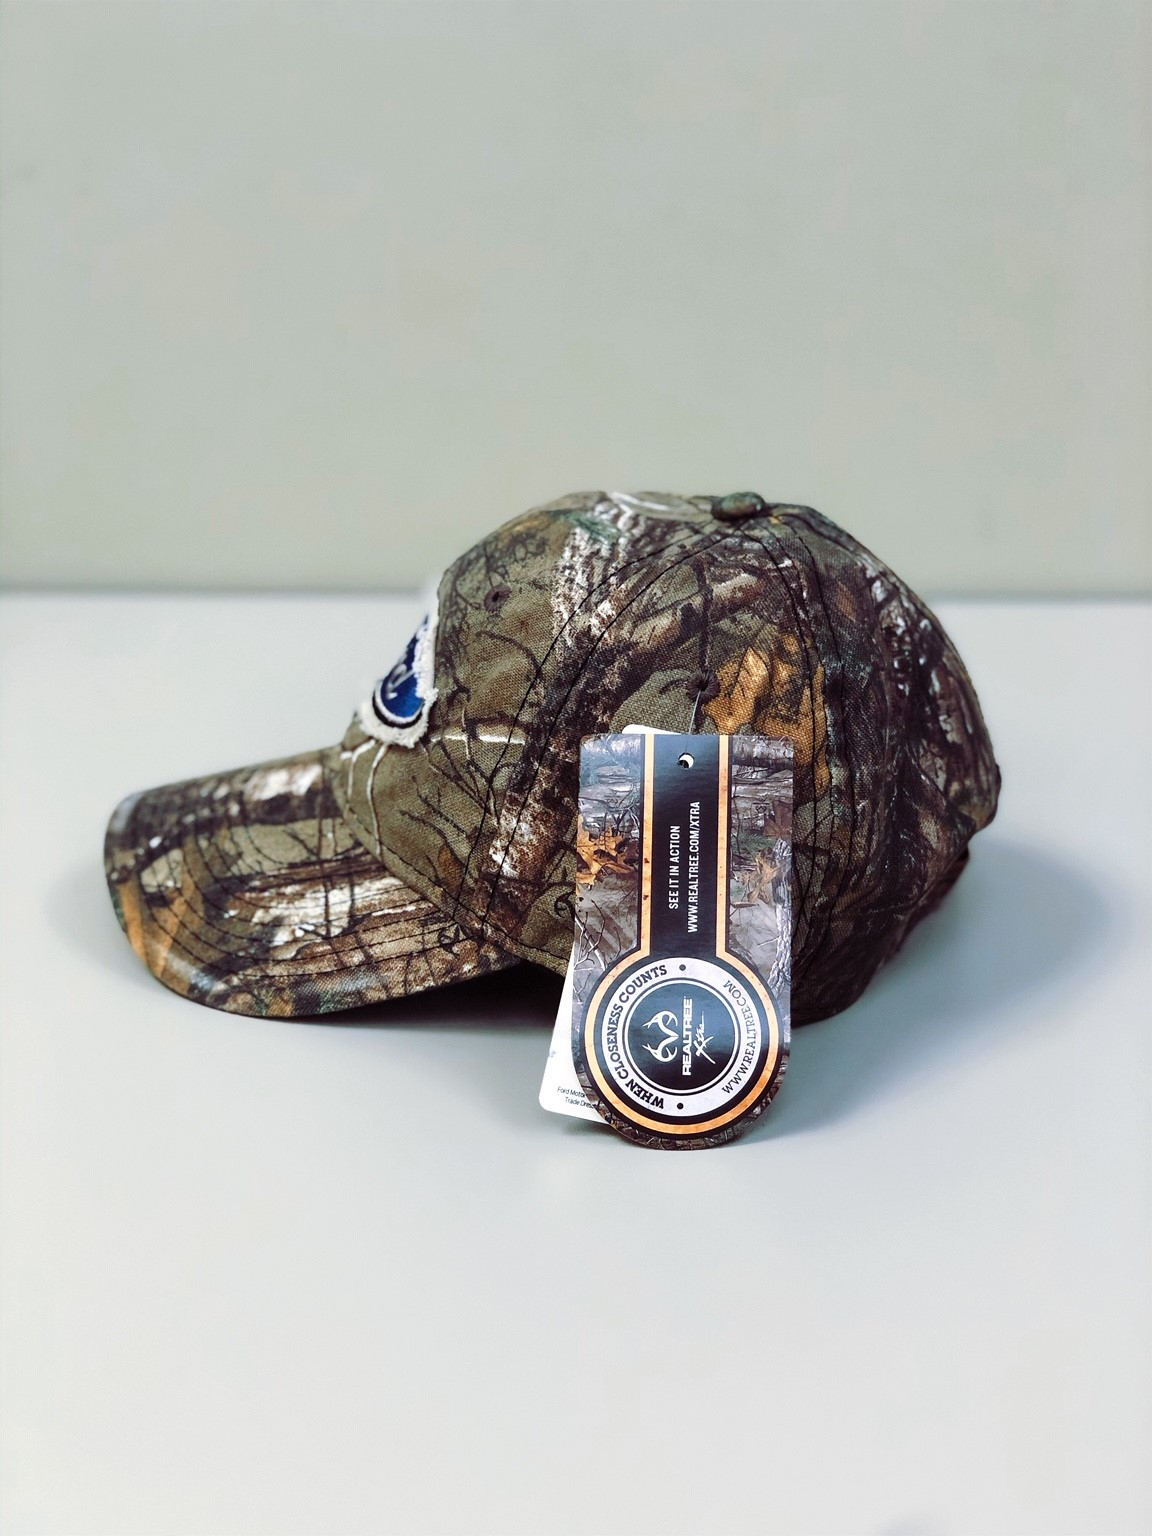 Ford Built Tough Cap Side View - Officially Licensed for sale by Pioneer Promo